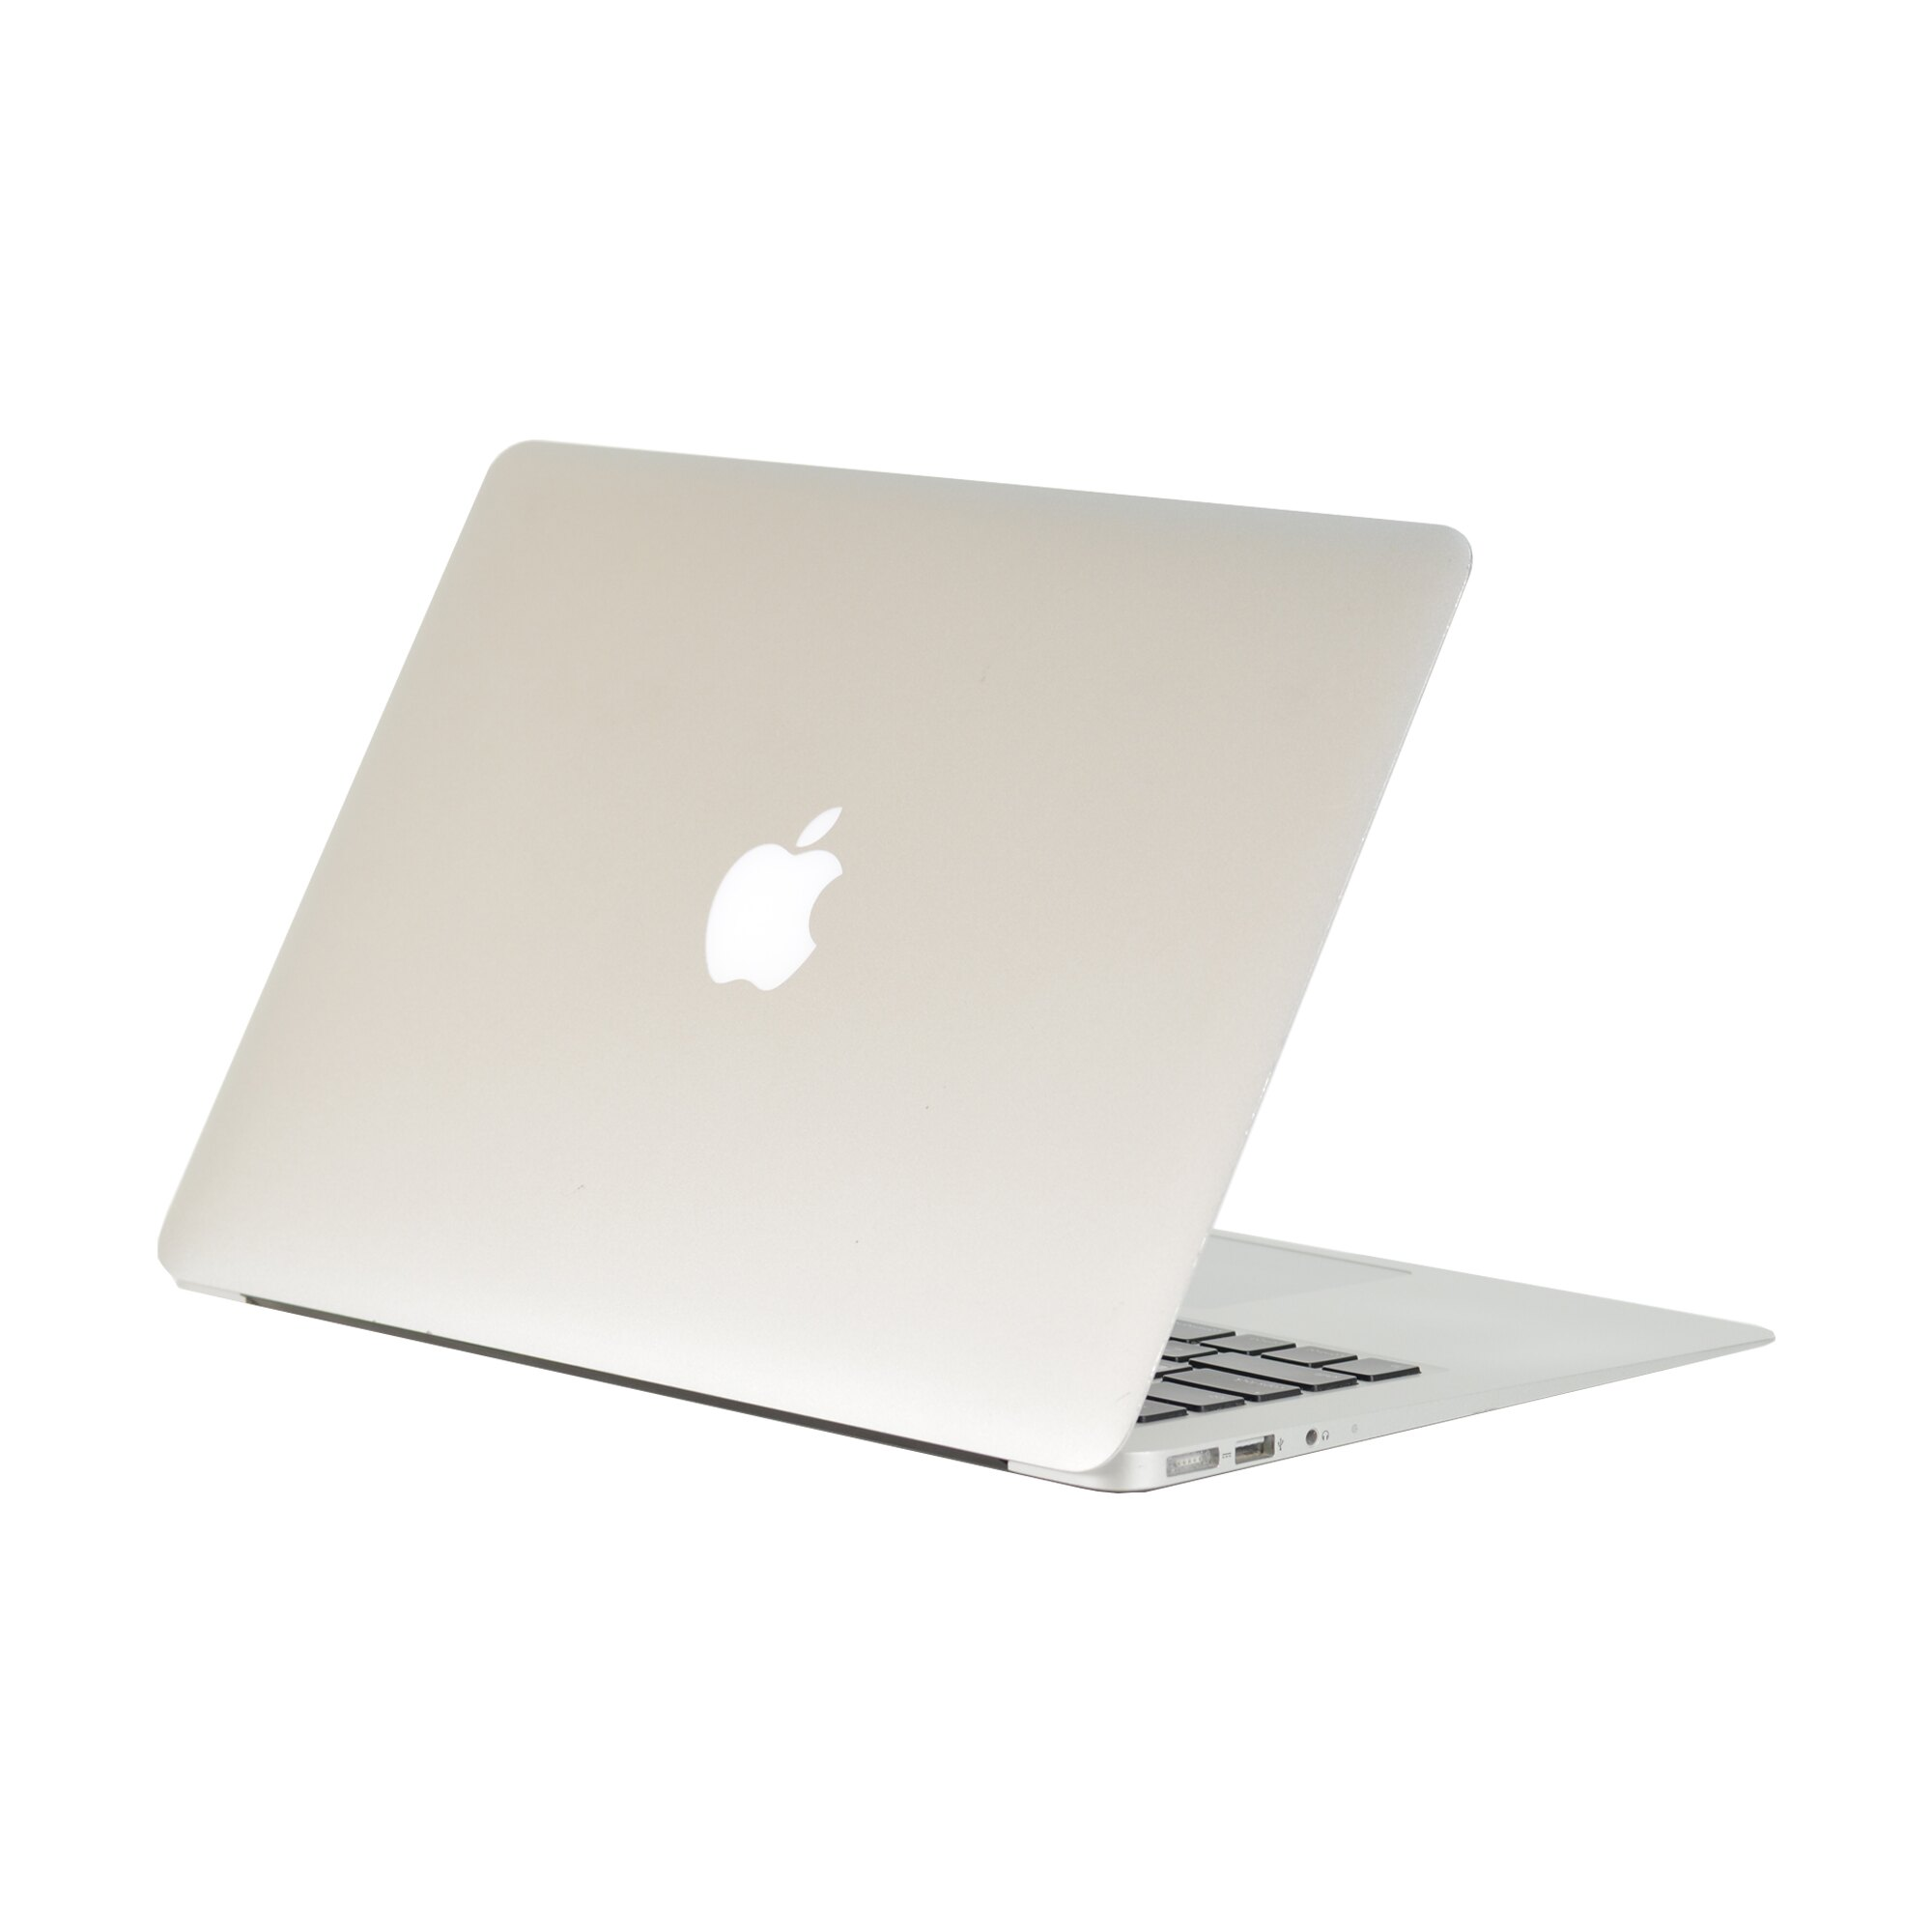 Joy Systems B Grade Apple Macbook Air A1466 Md231ll A Intel